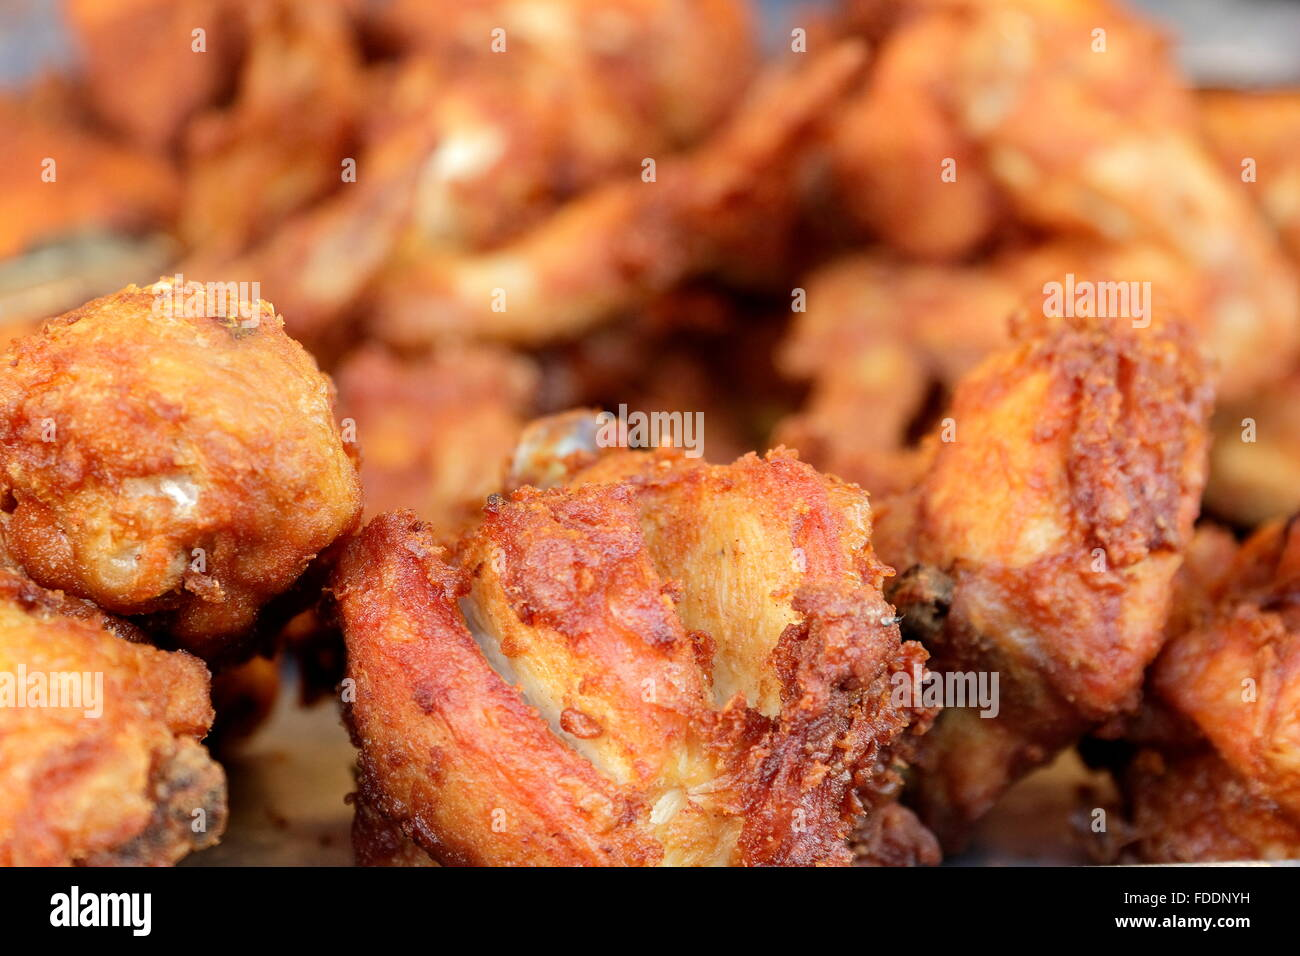 Fast food fried chicken in Thailand that can be purchased online . Sticky rice and fried onion together - Stock Image